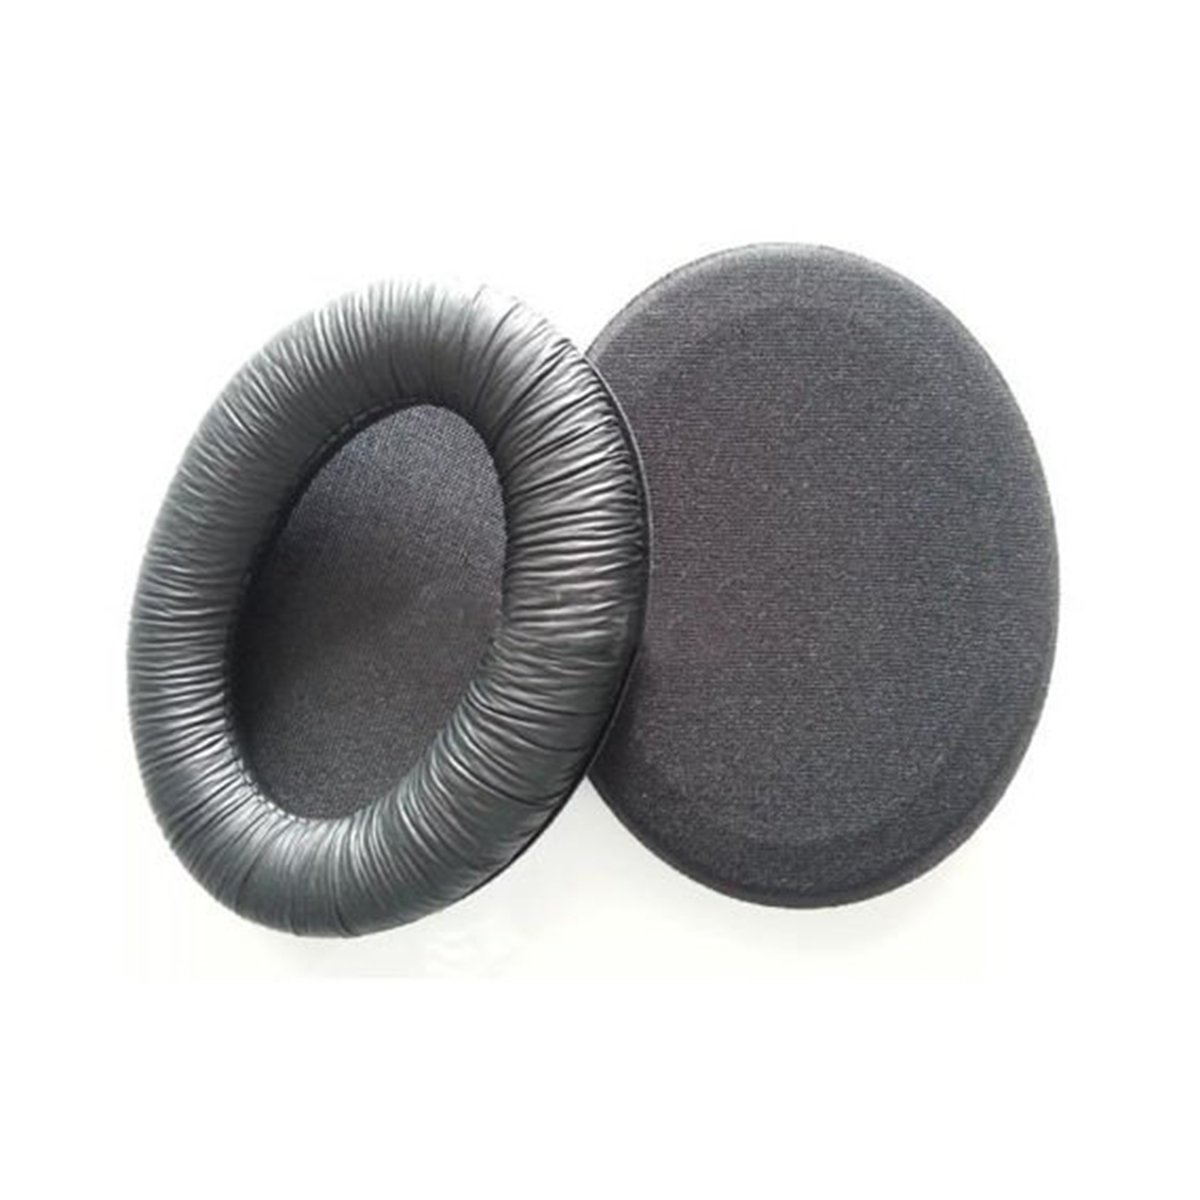 0ed2c39362d Amazon.com: OULII Replacement Ear Pads for Sennheiser HD201 HD201S  HD180,One Pair,with Head Beam (Black): Home Audio & Theater